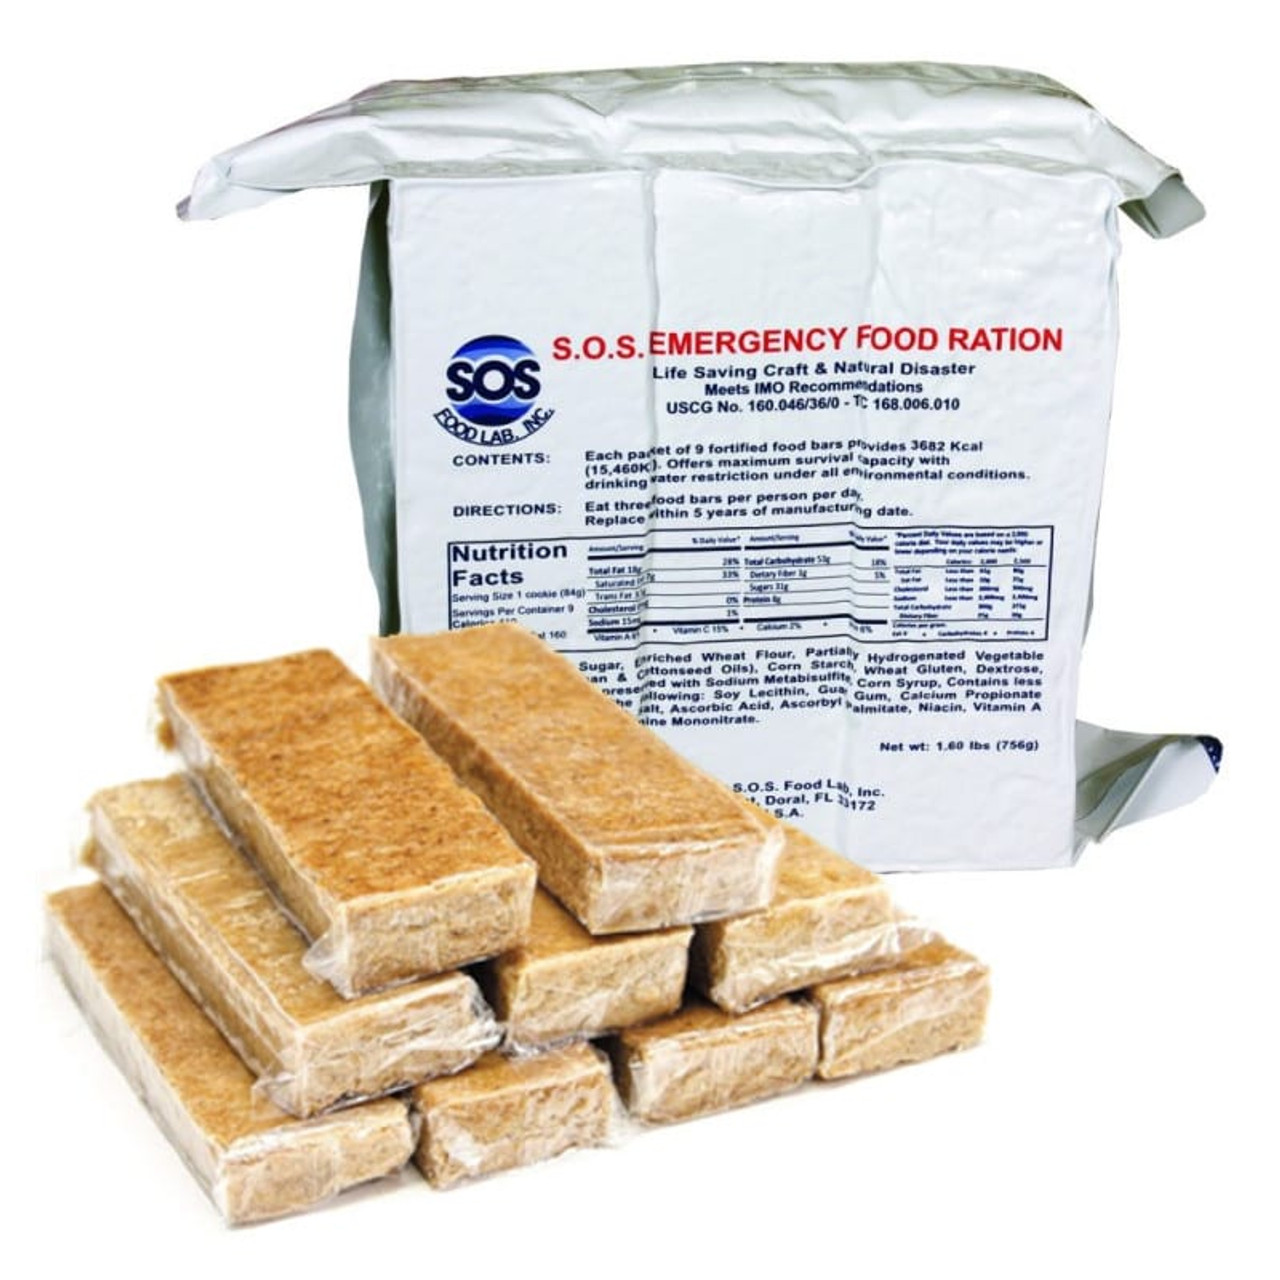 S.O.S Emergency Food Ration 3600 Calorie.   *02/20 MFG Date